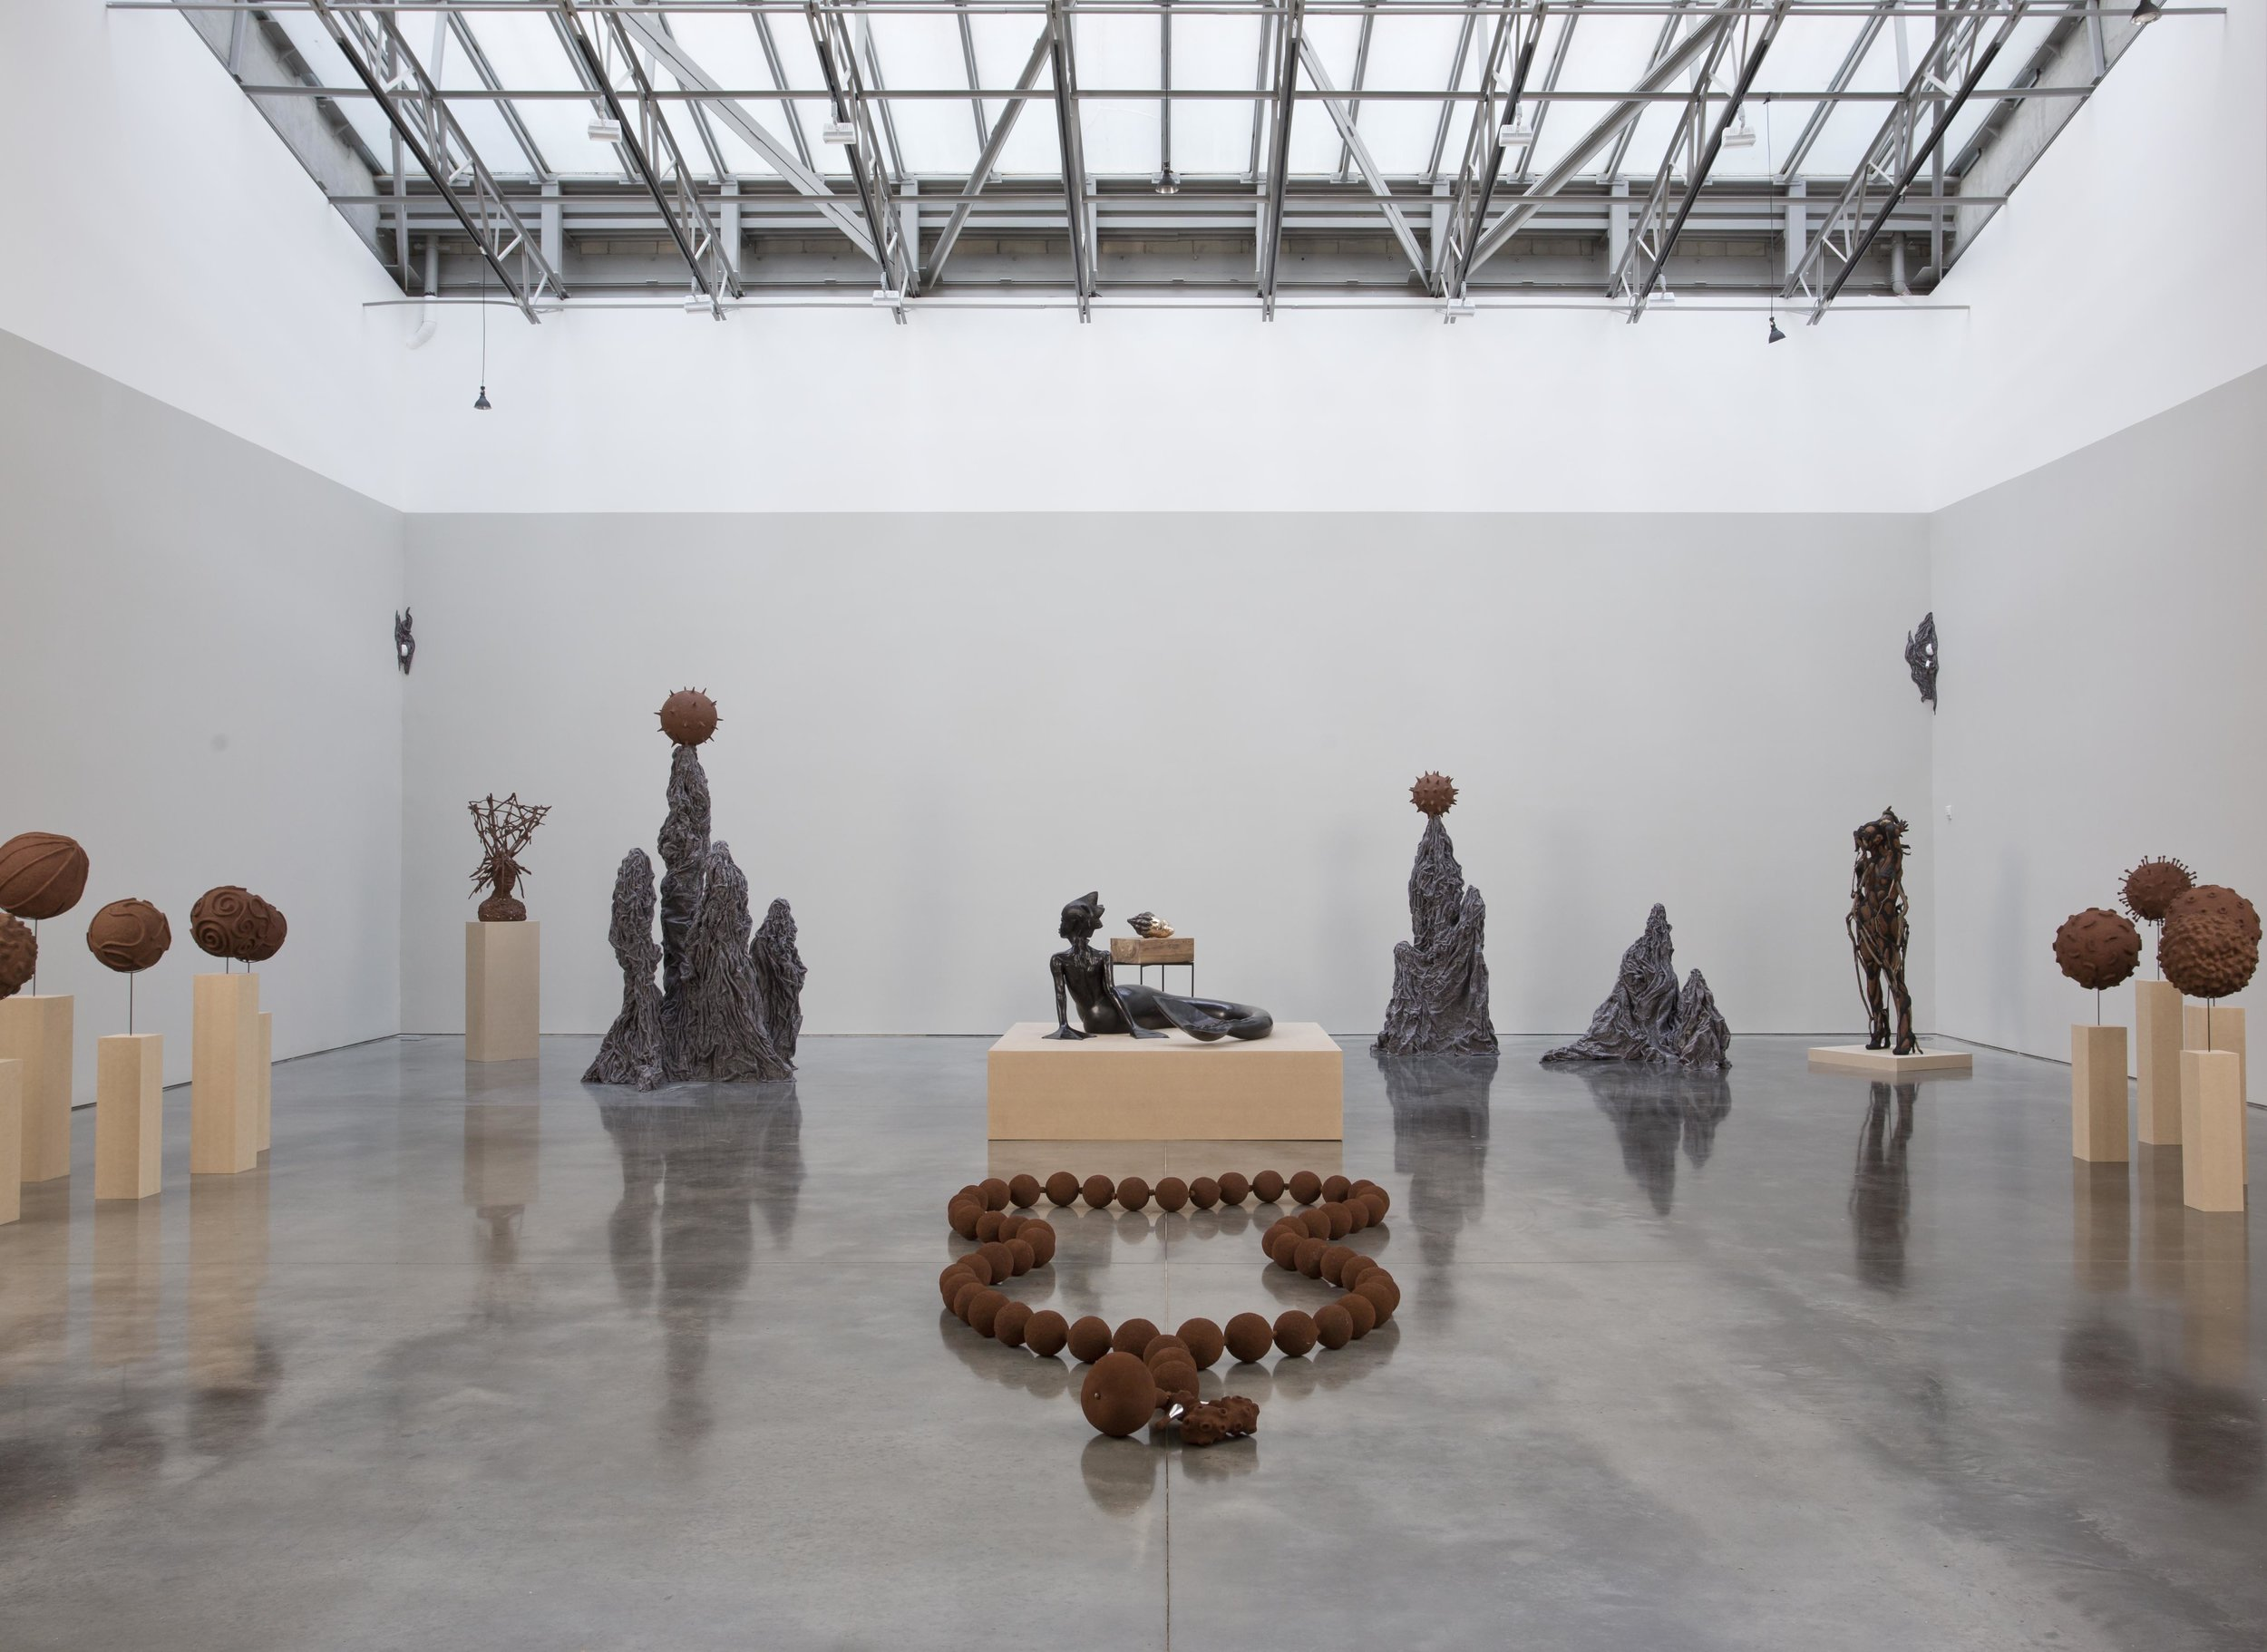 Wangechi Mutu, Ndoro Na Miti. Installation view: Gladstone Gallery, New York  January 27-March 25, 2017, Copyright Wangechi Mutu.  Courtesy the artist and Gladstone Gallery, New York and Brussels. Photo by David Regen